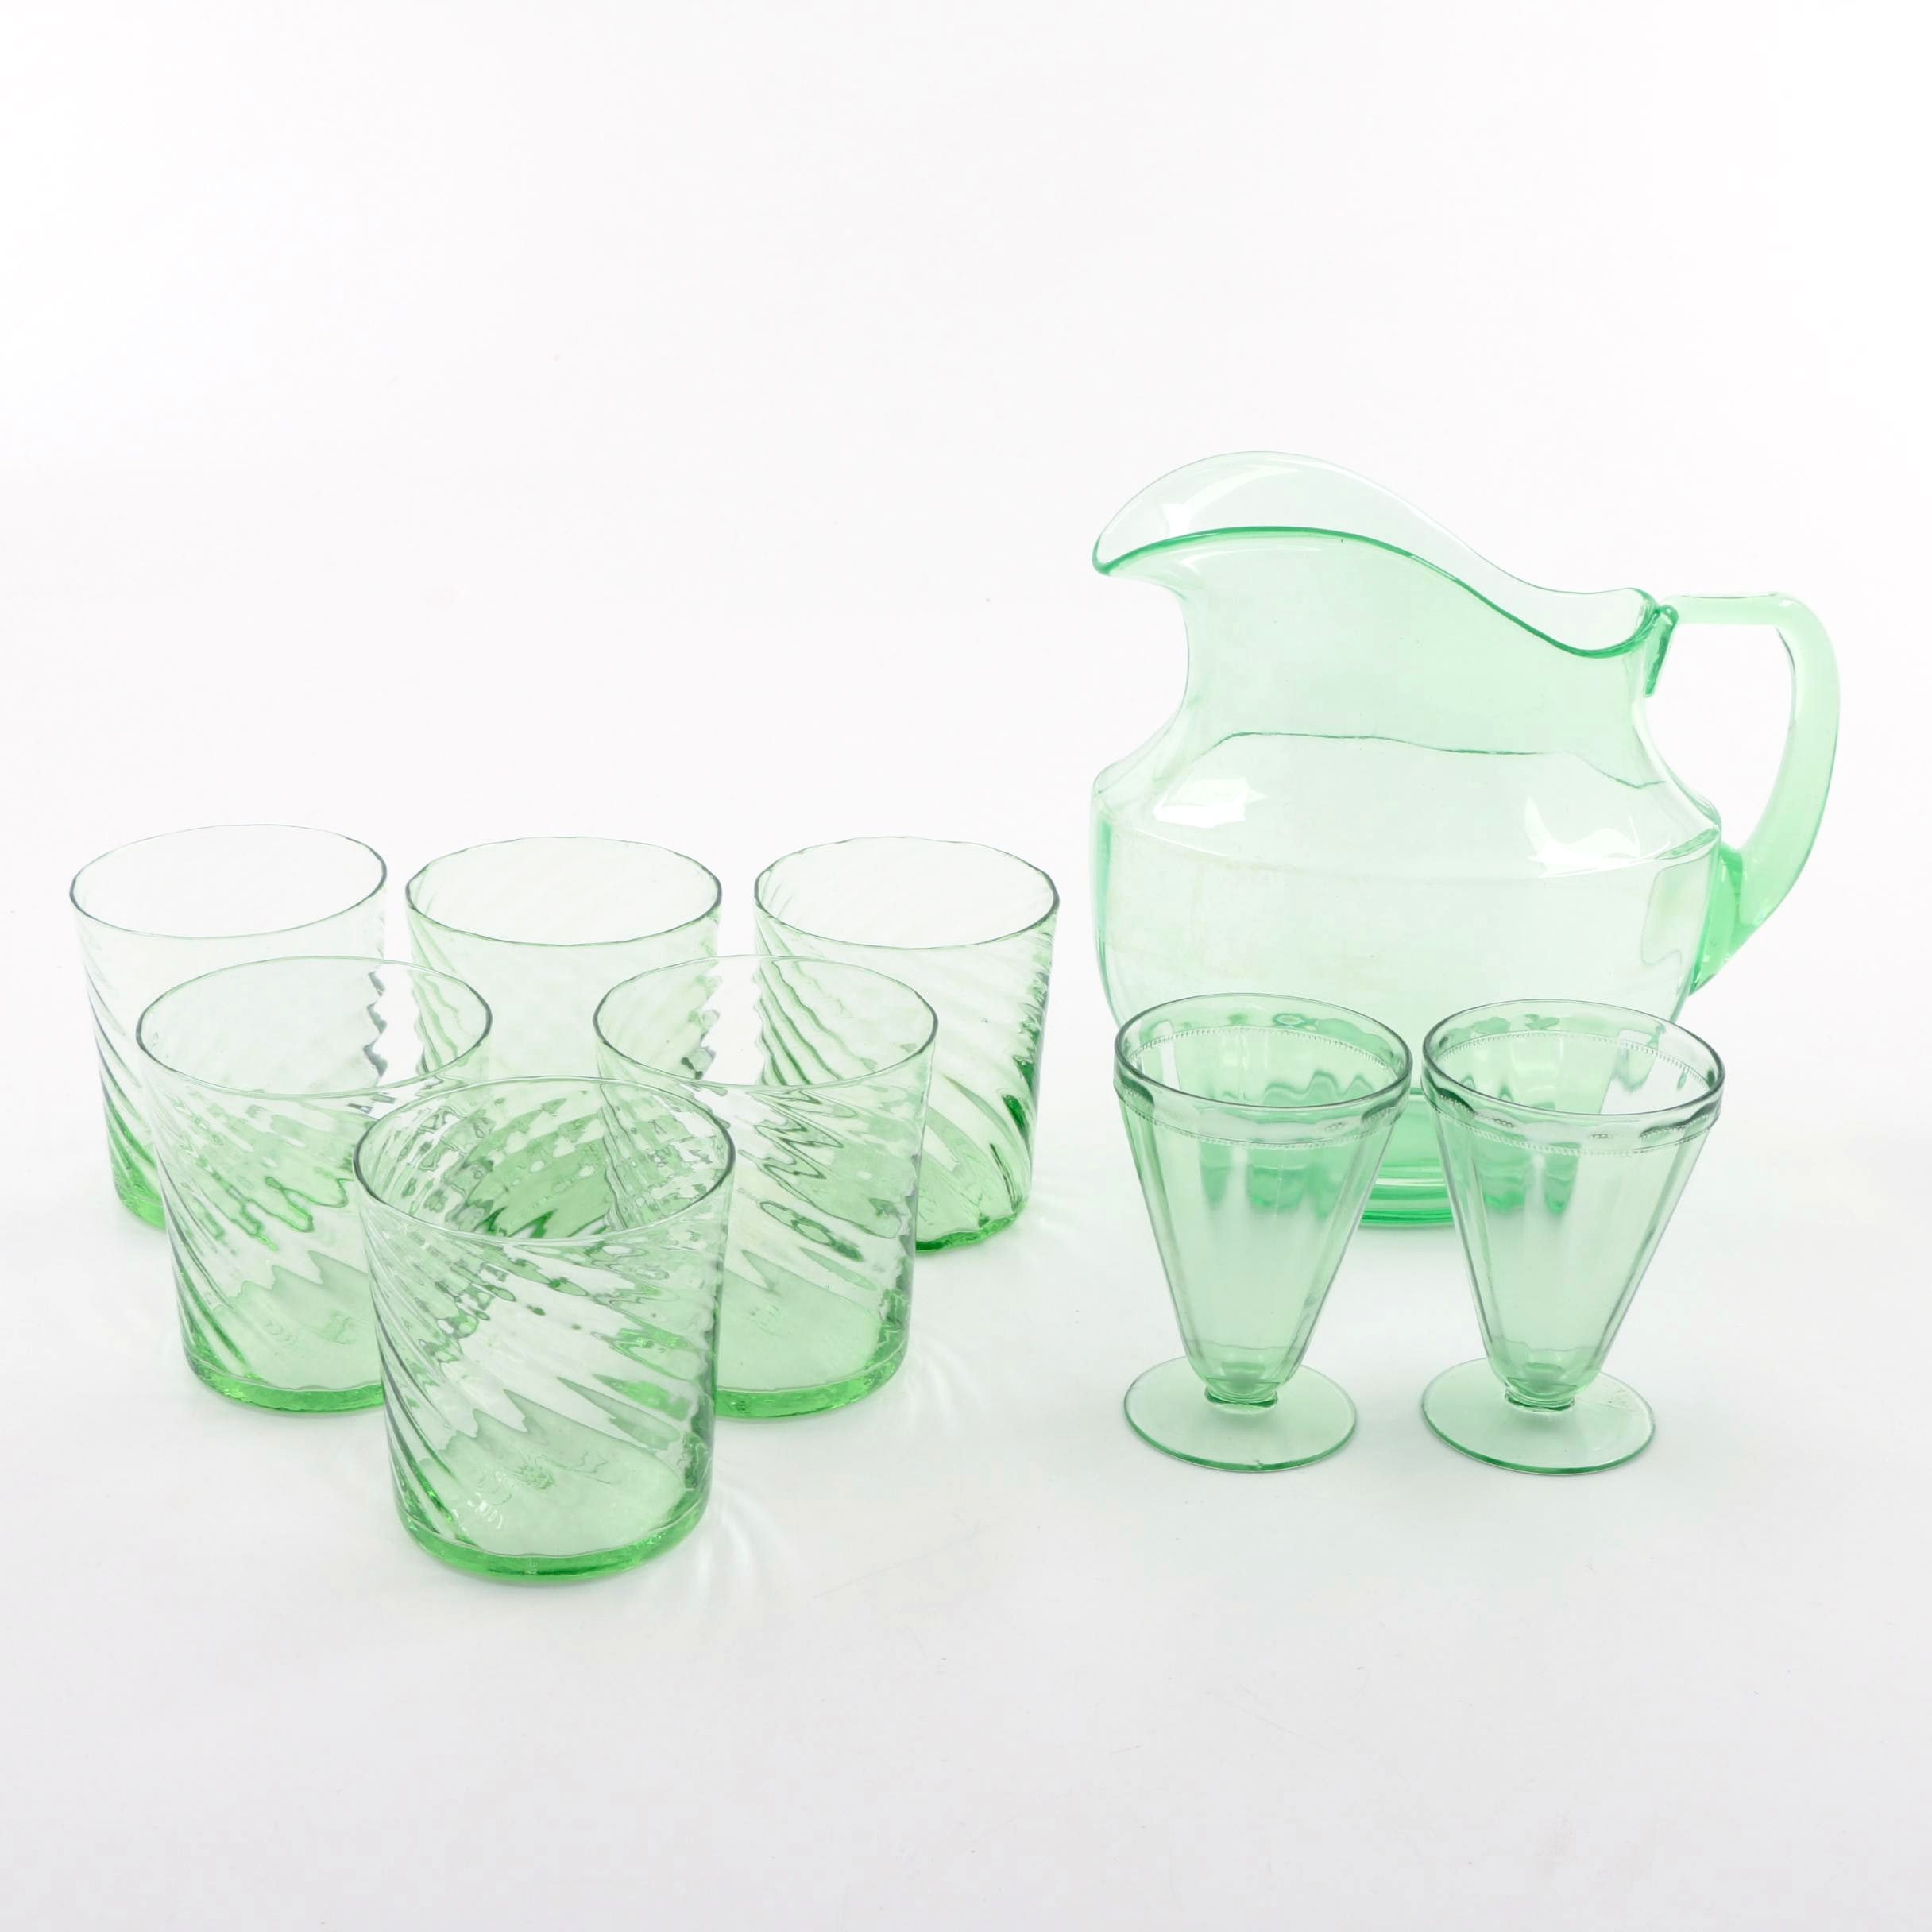 Green Depression Glass Pitcher and Tumblers